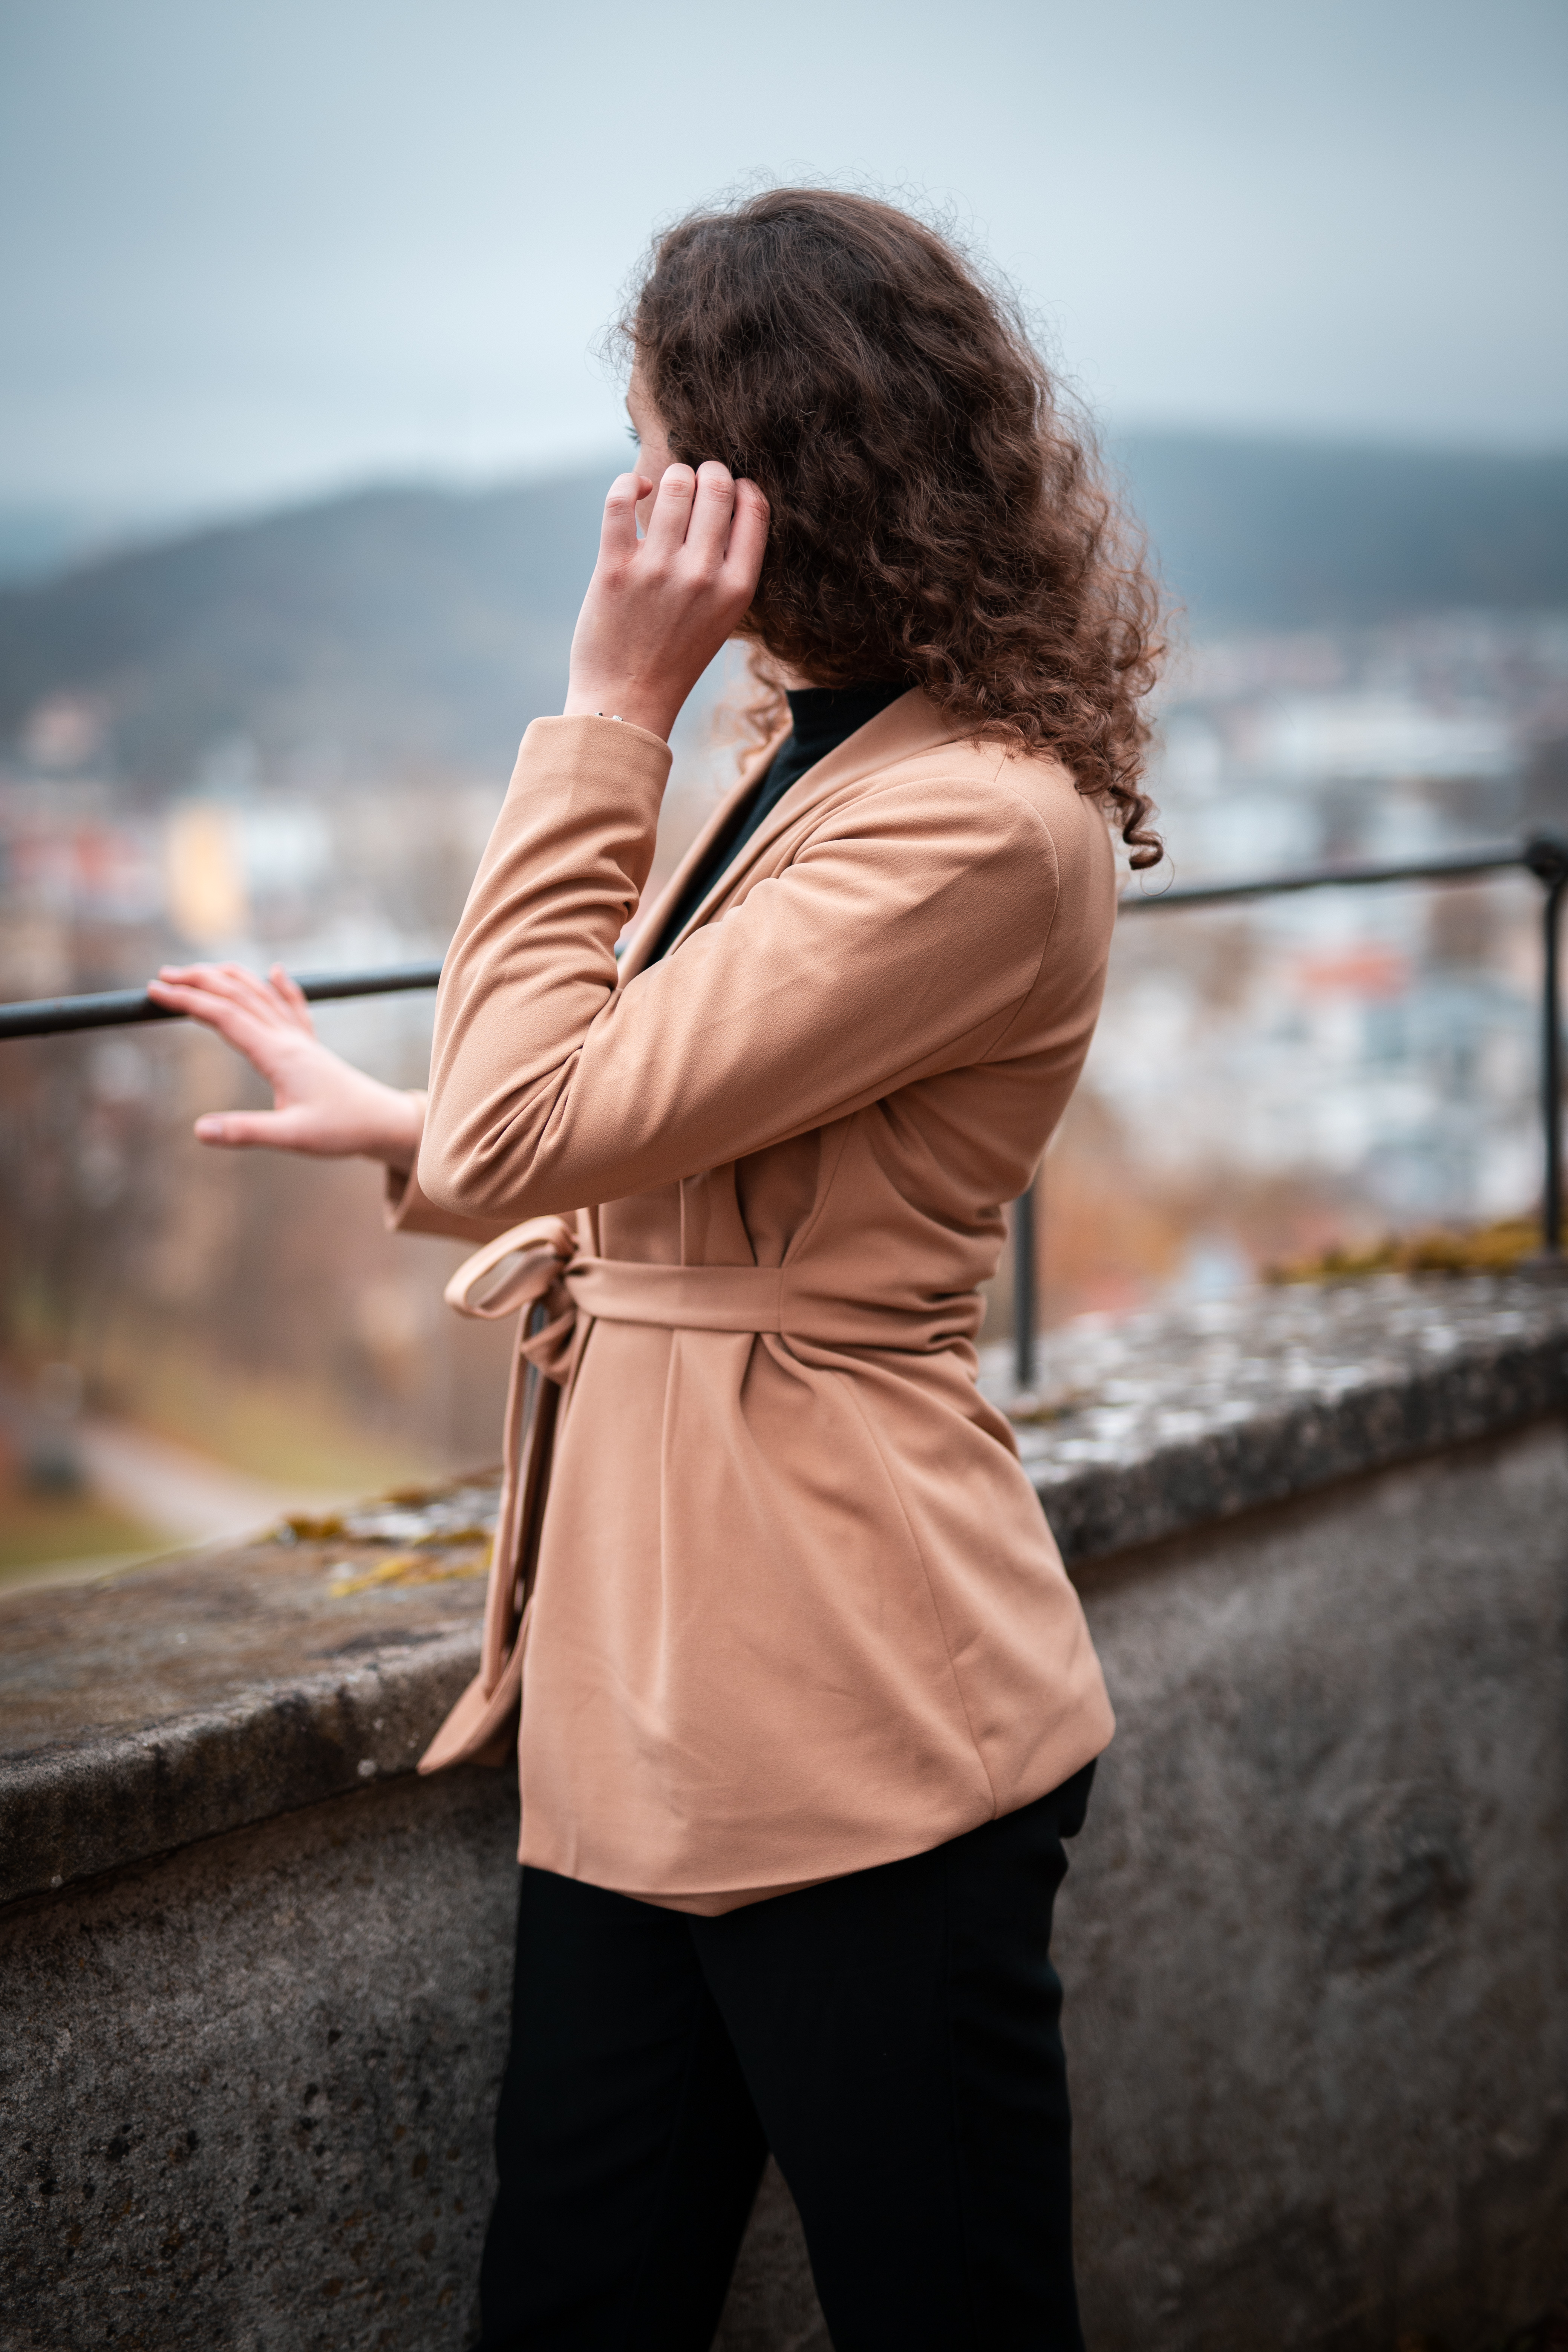 woman-in-brown-coat-standing-on-gray-concrete-wall-during-daytime